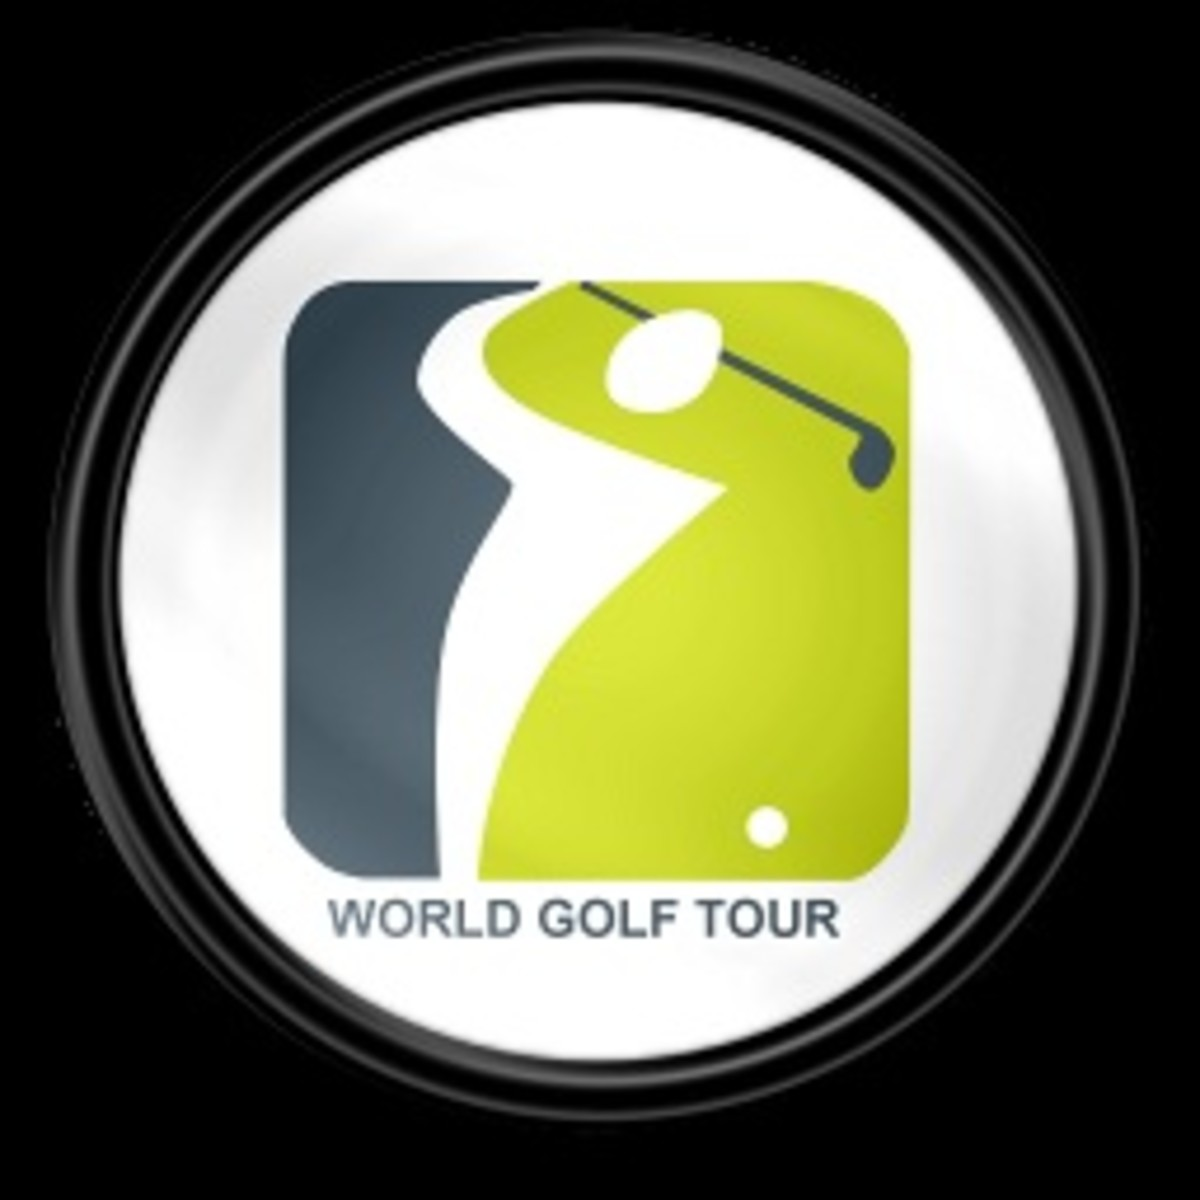 How To Shoot Low Scores On WGT - World Golf Tour Tips